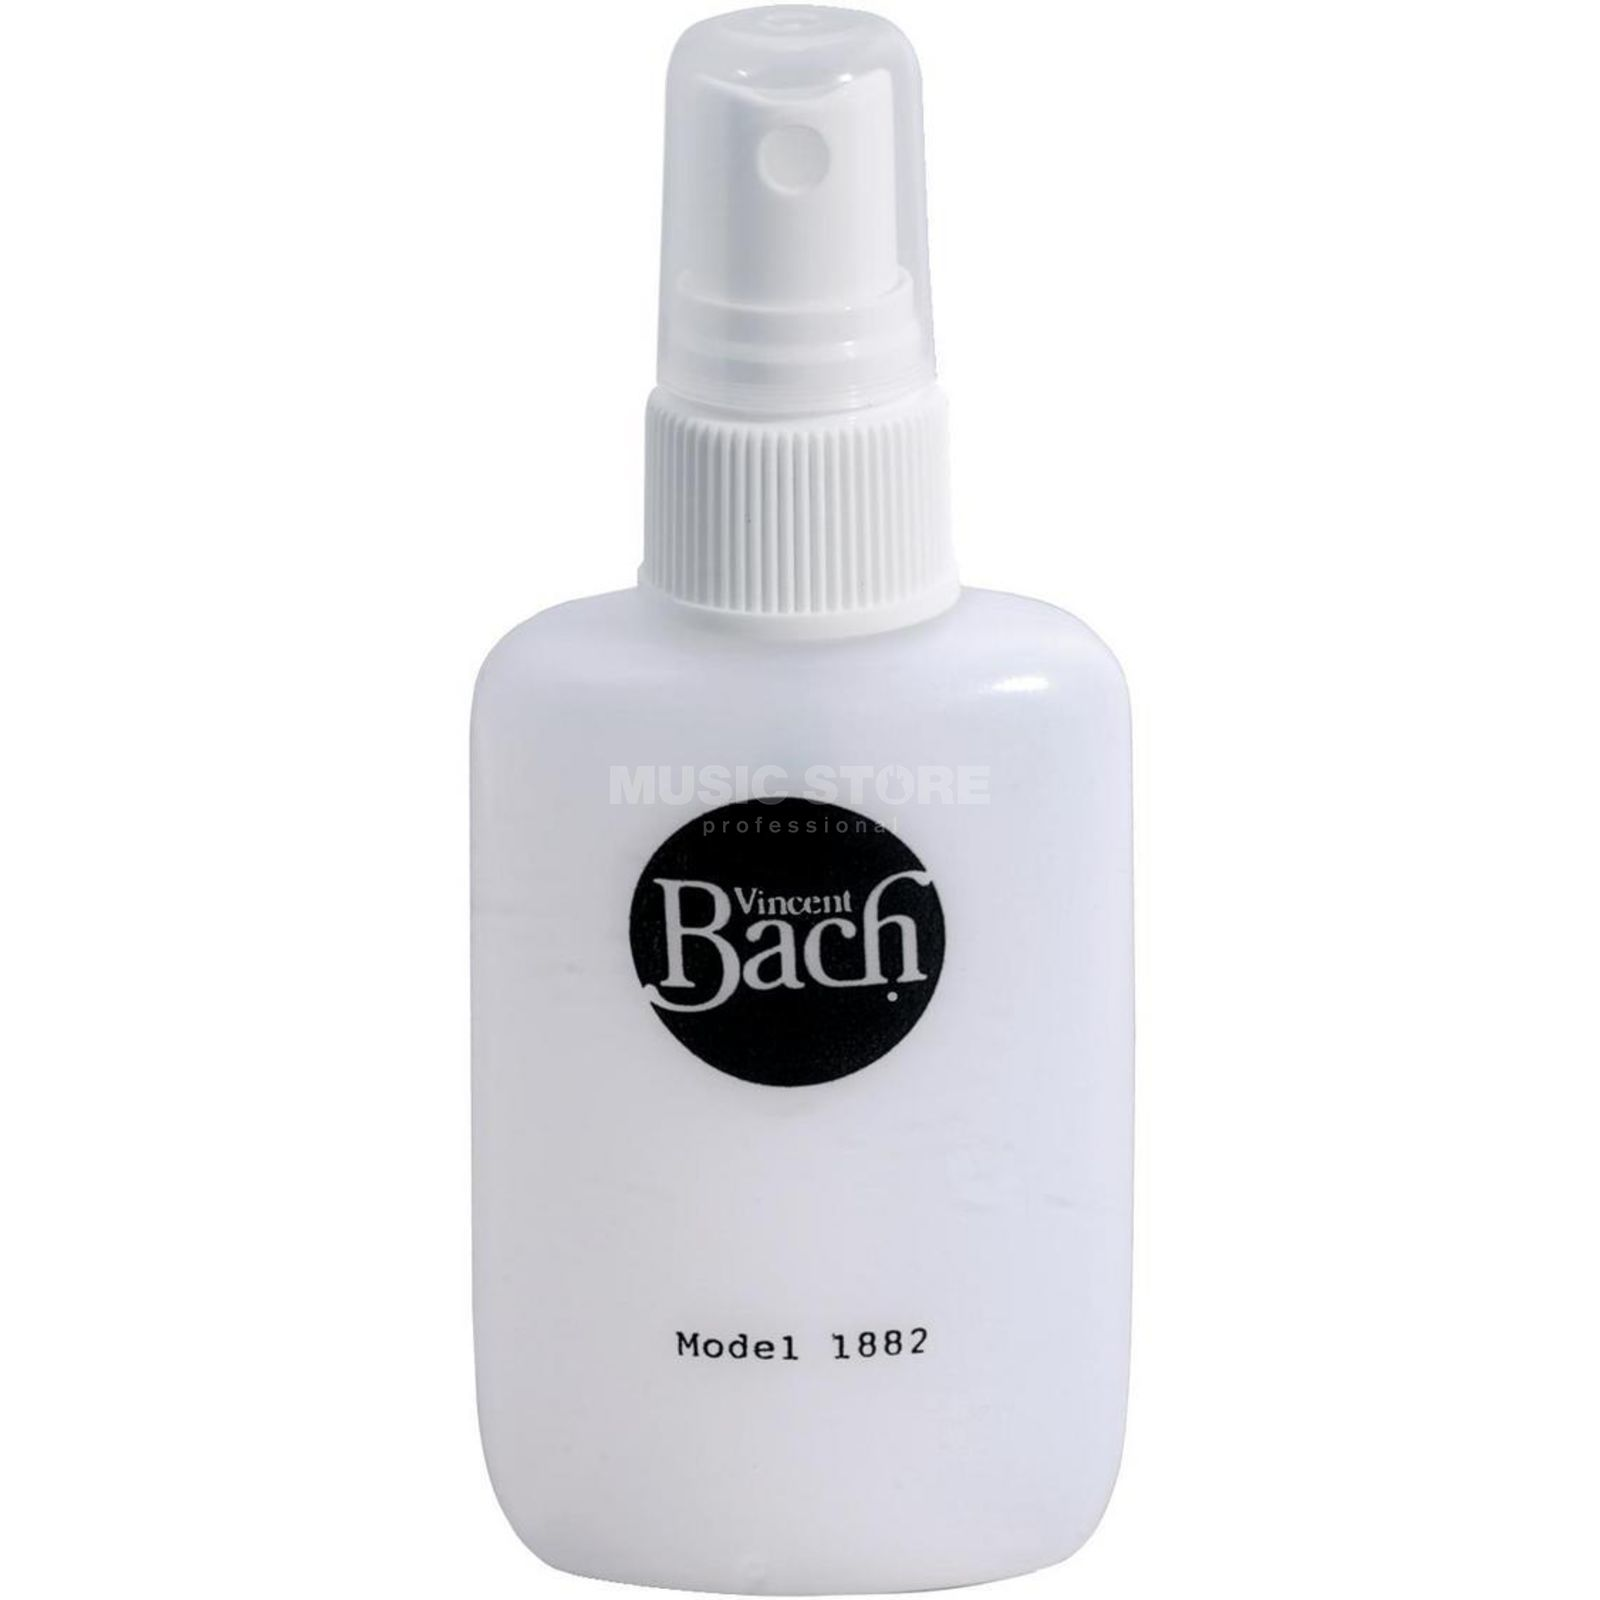 BACH Empty Sprax Bottle as Replacement for Cleaning Kit Product Image